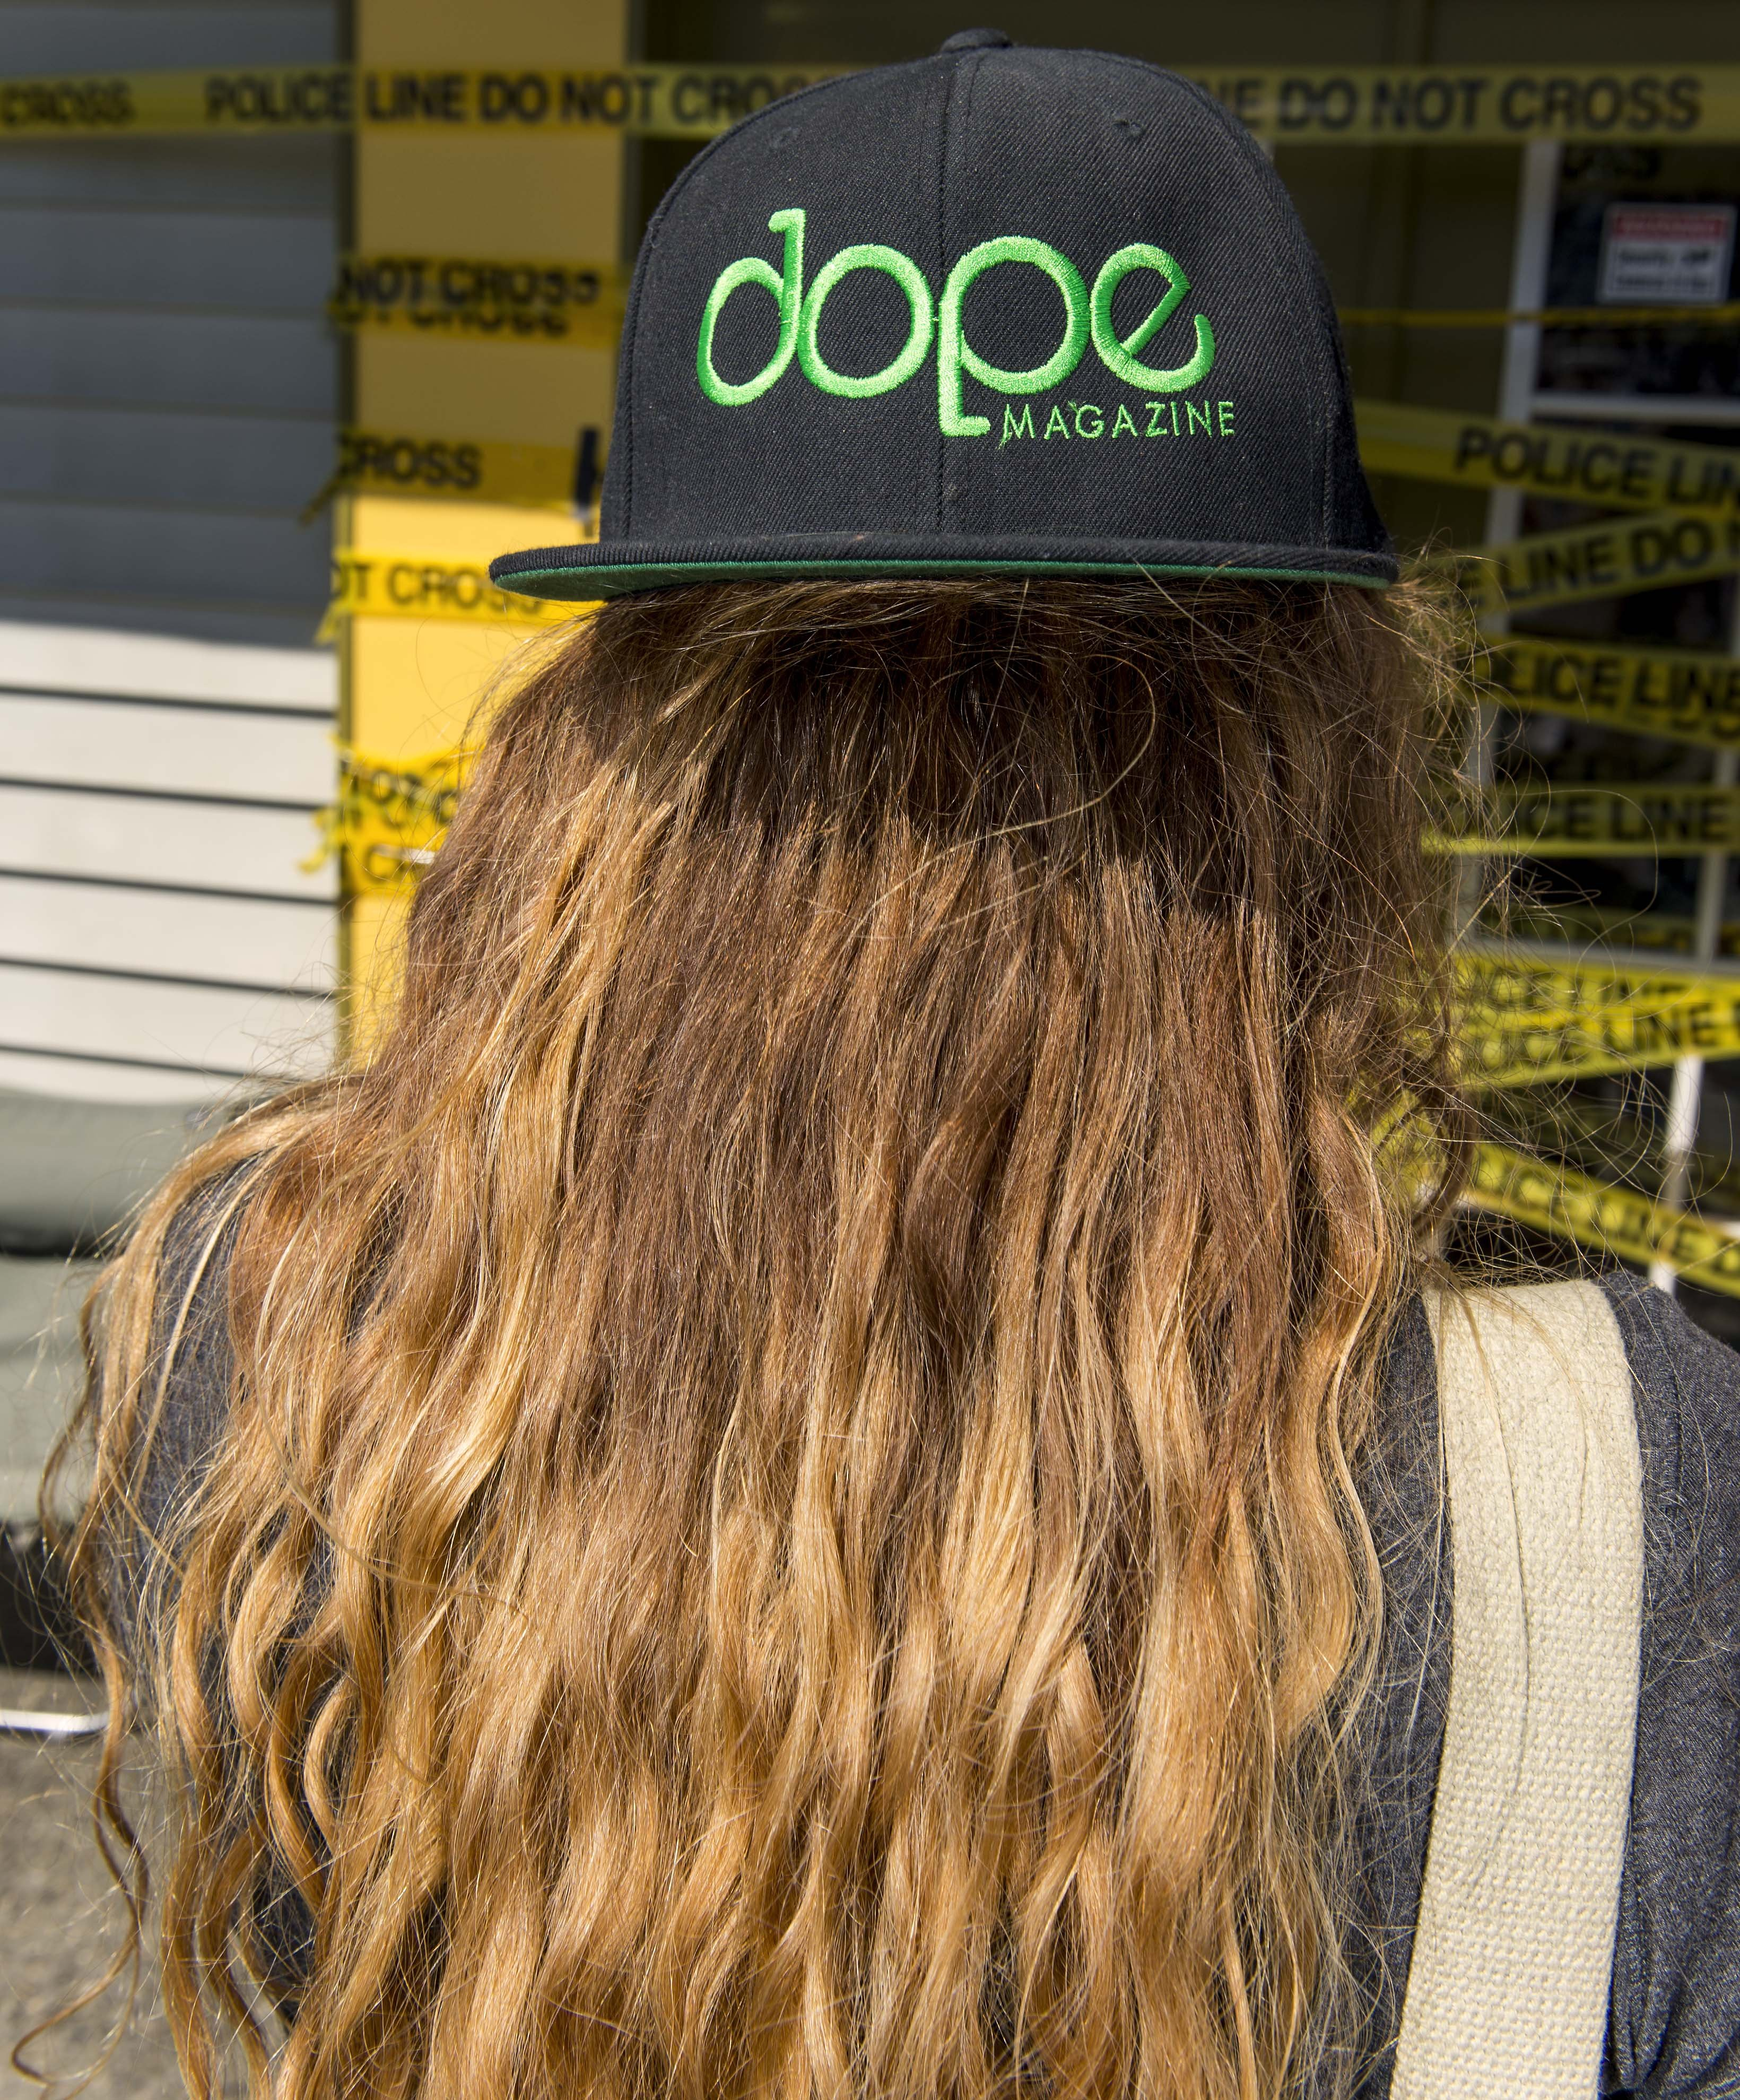 A Dope Magazine photographer takes a photo at Cannabis City in Seattle on July 8, 2014.